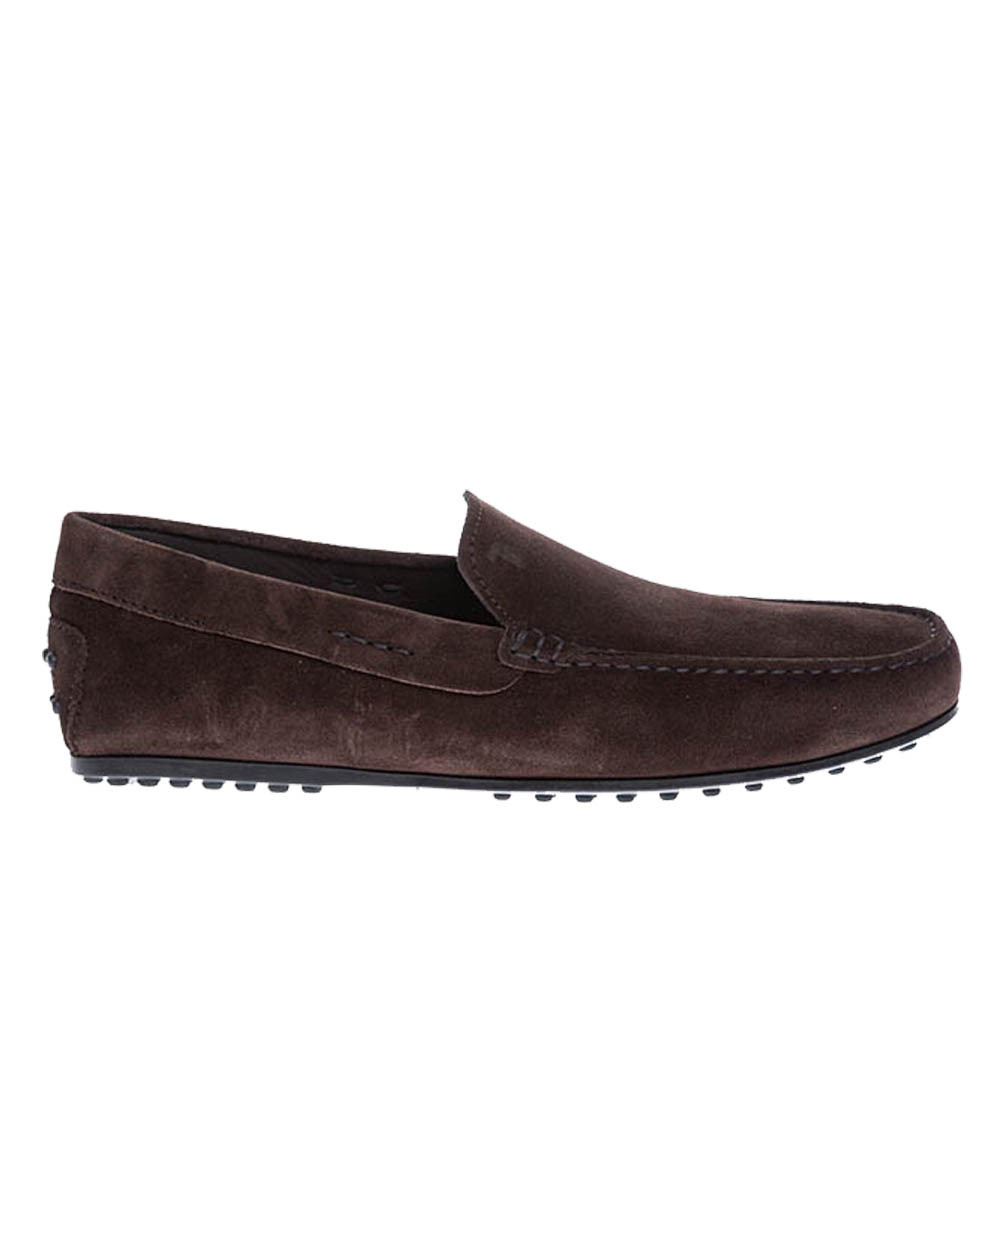 City Gomini - Suede moccasin